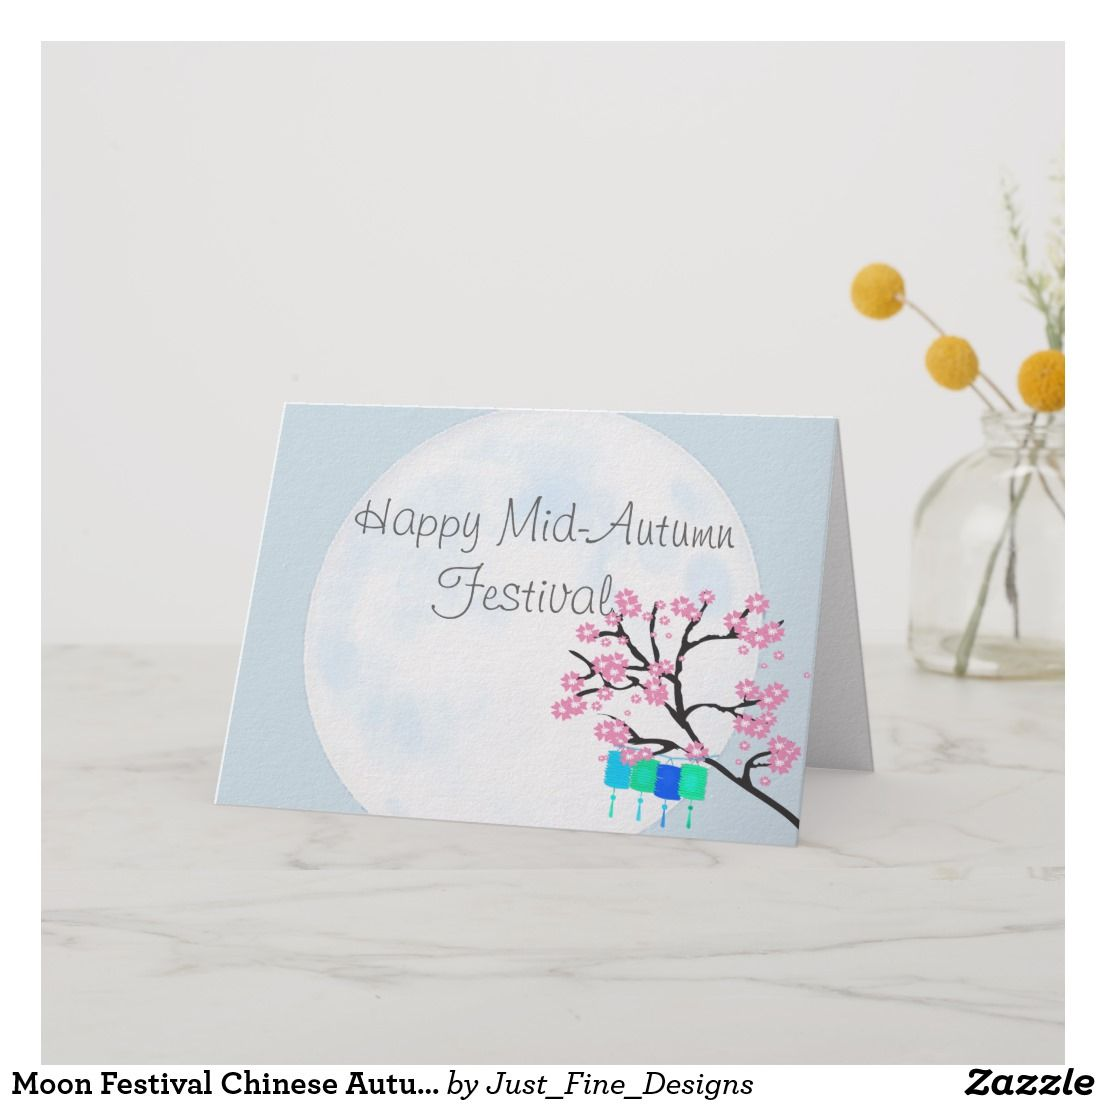 Moon festival chinese autumn festival greeting card in 2018 moon moon festival chinese autumn festival greeting moon festival chinese autumn festival greeting moon festival and the mid autumn festival m4hsunfo